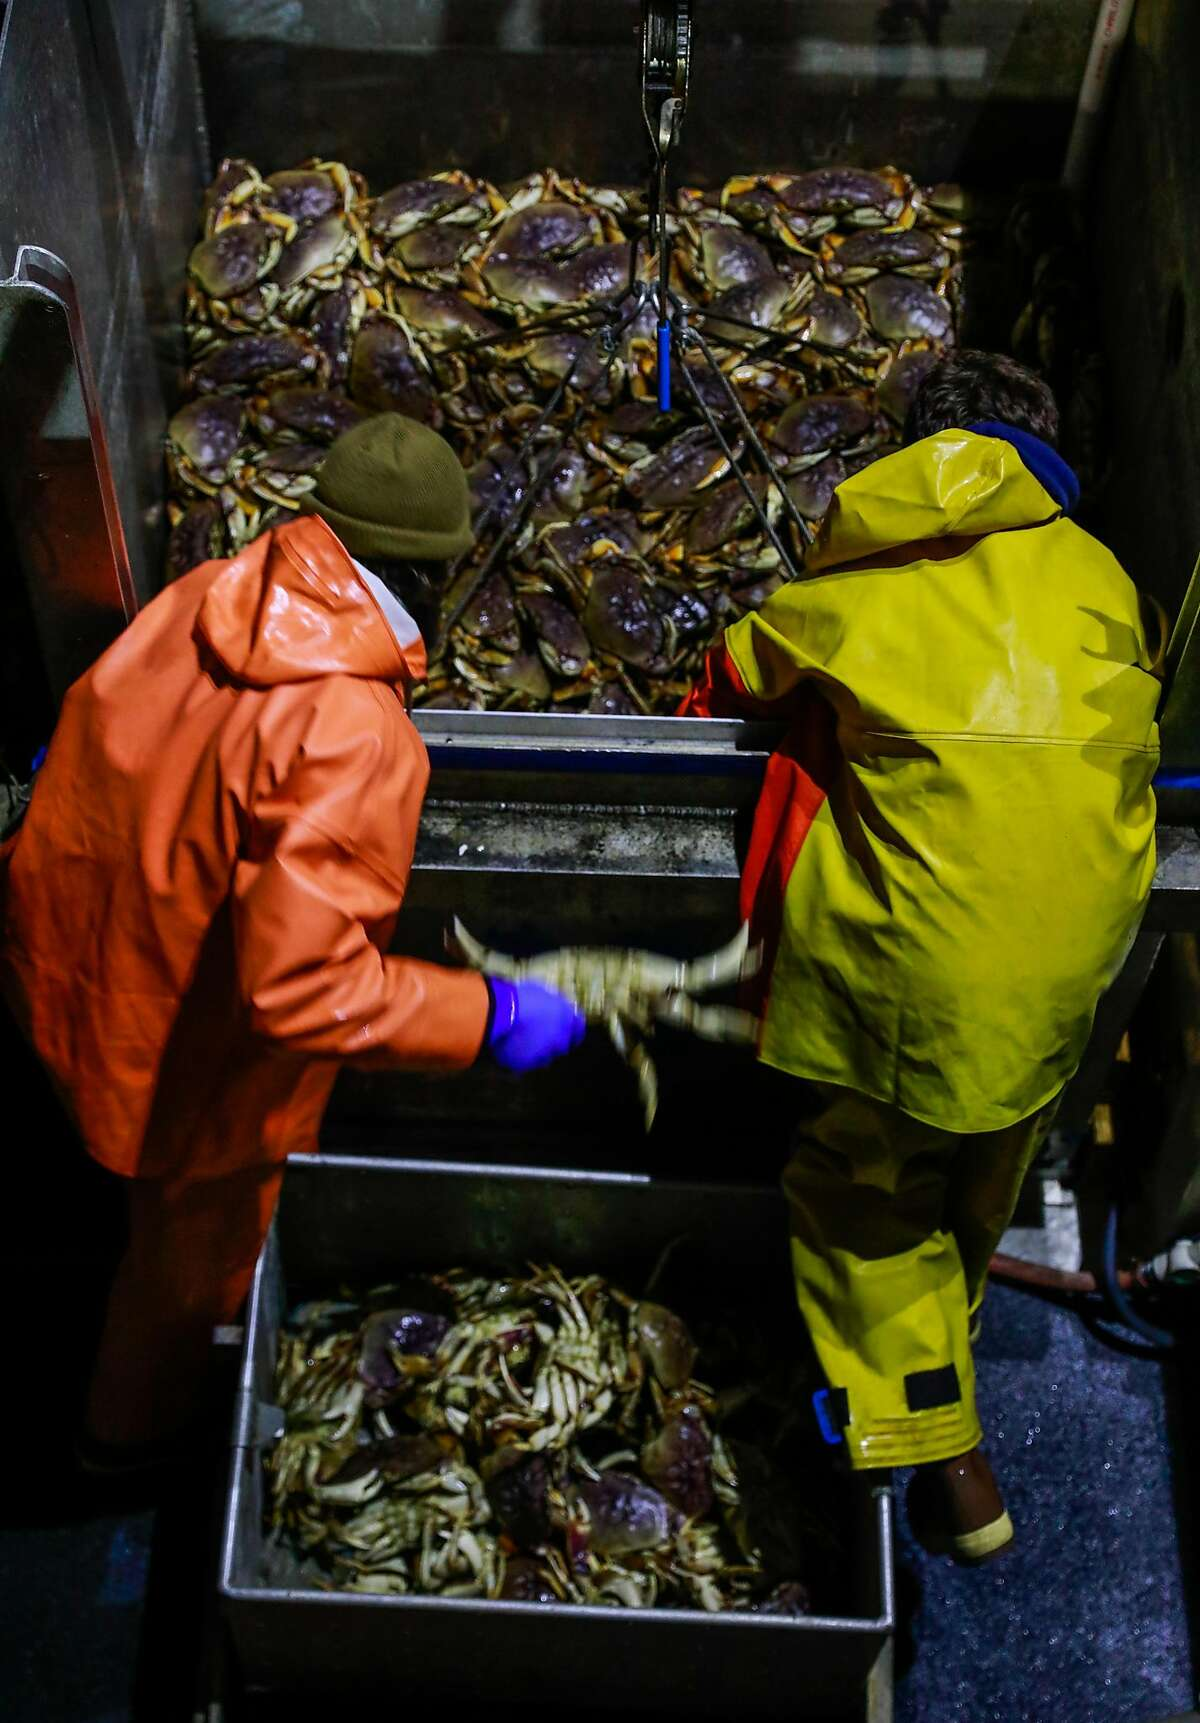 Fisherman empty a container of Dungeness crab into a metal bin to be hauled ashore to Fisherman's Wharf on Pier 45 in 2019. Right now, local crabbers are waiting to being working until a suitable wholesale price is established.